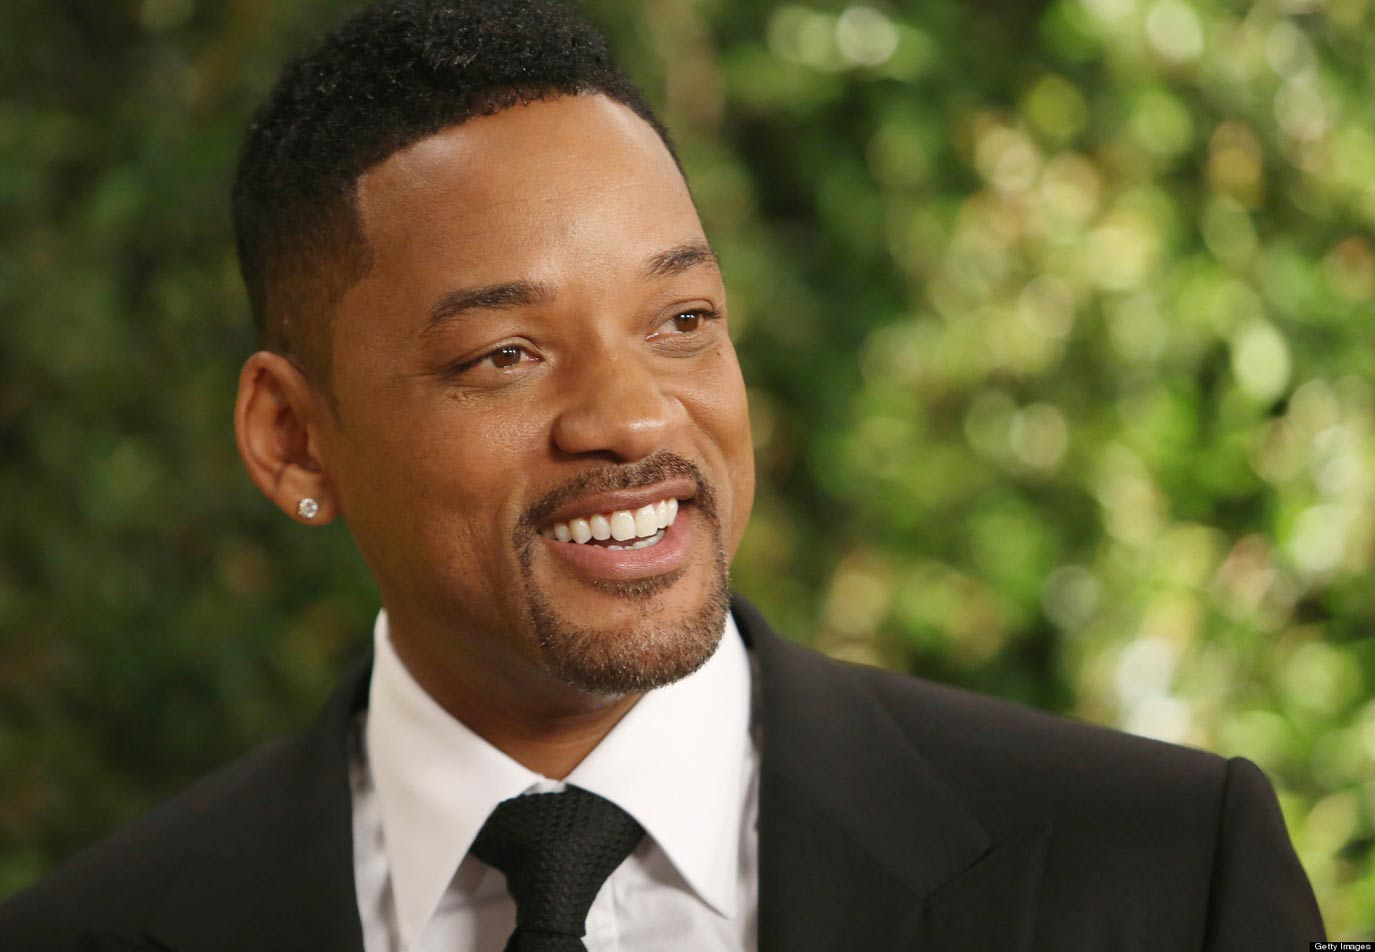 will-smith-sexy-jacket-hollywood-hot-sexiest-actor-men-movie-star-recent-suit-watch-handsome-best-hairstyle